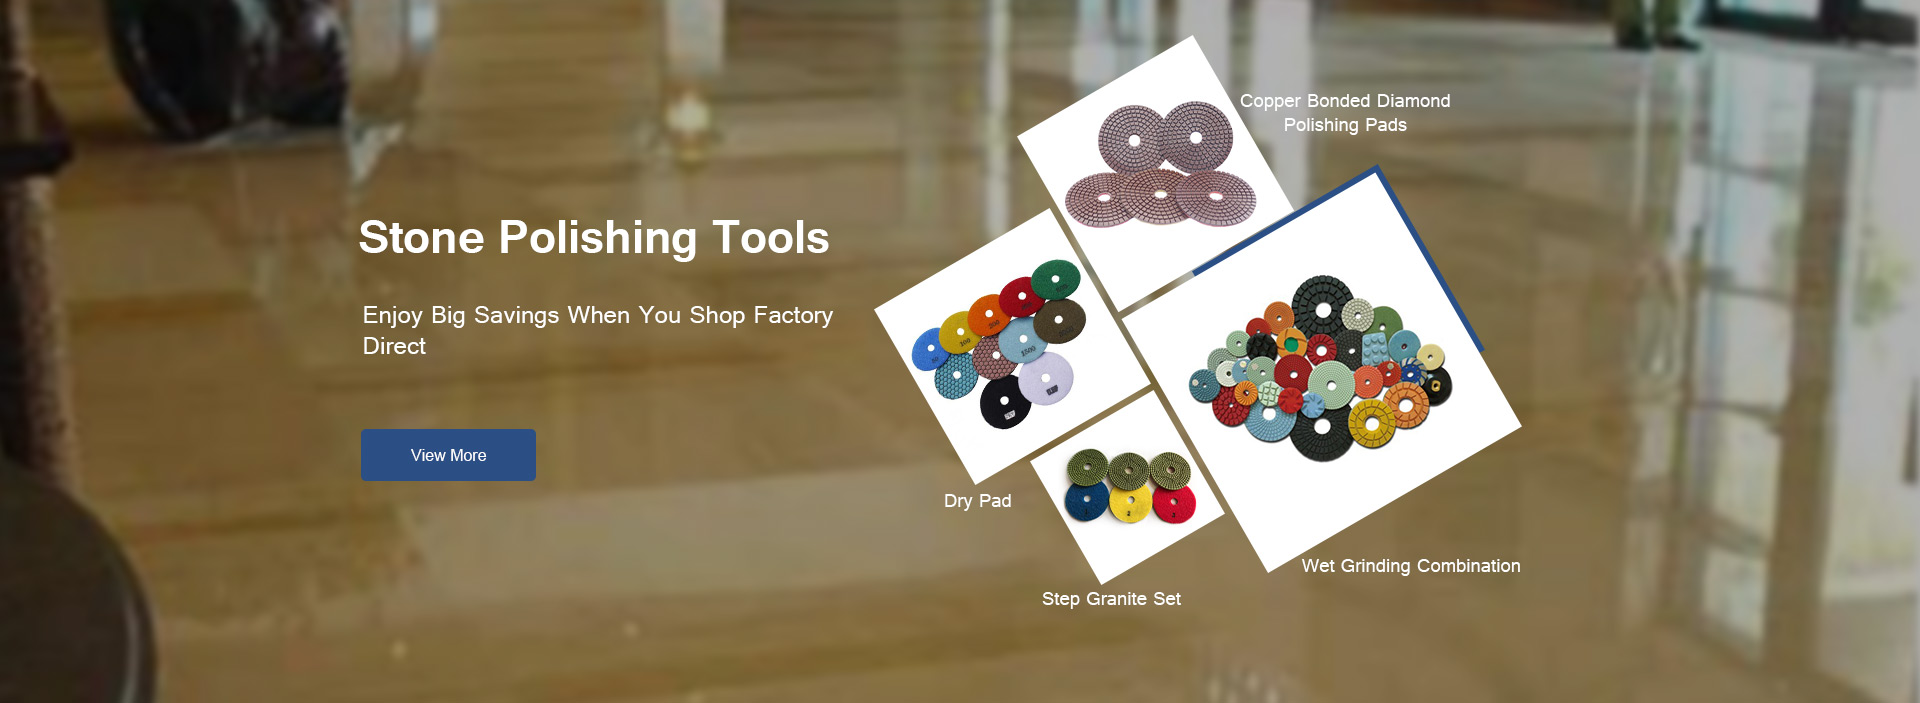 Concrete Polishing Tools